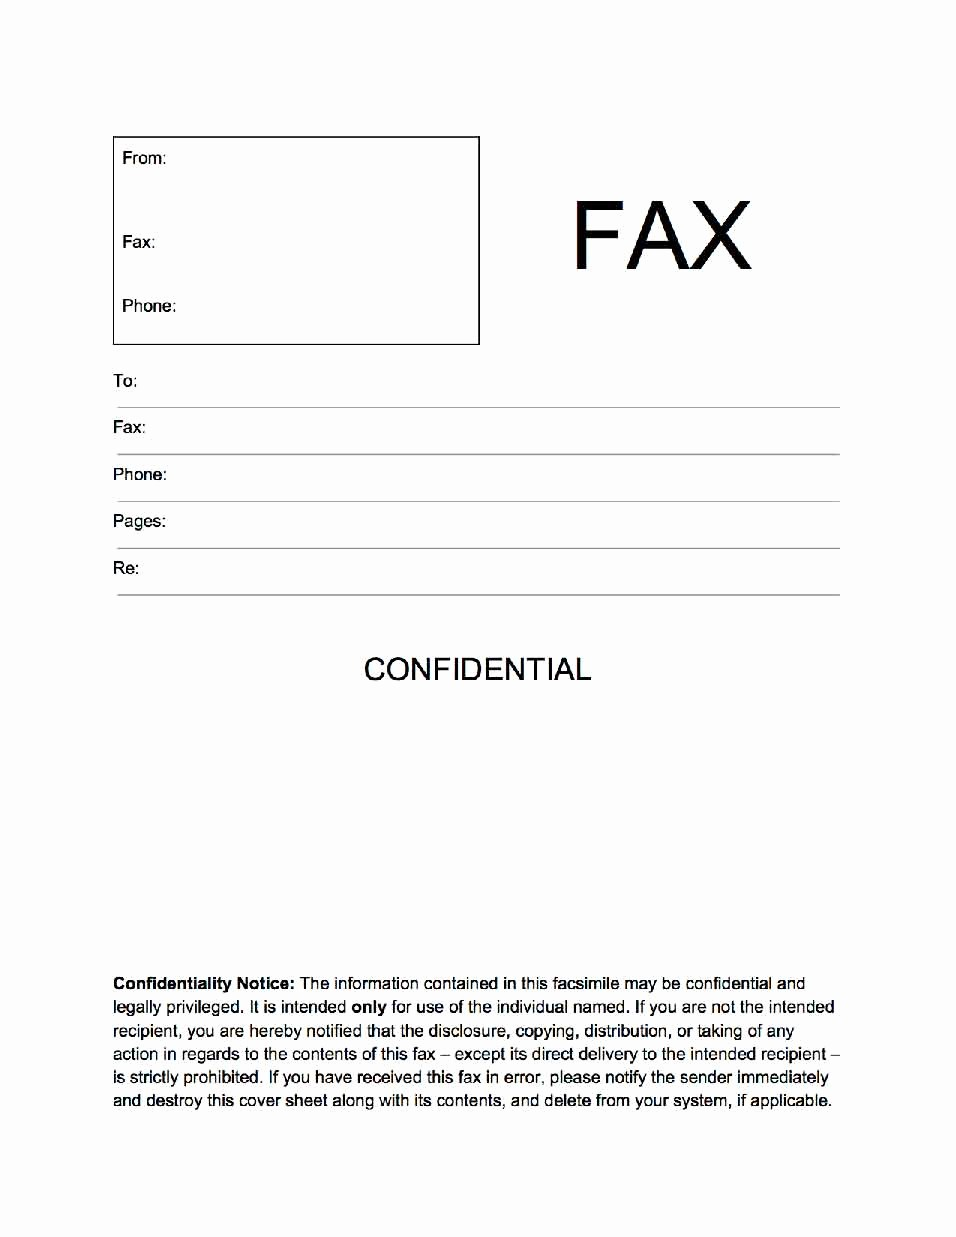 fax cover sheet confidential 869